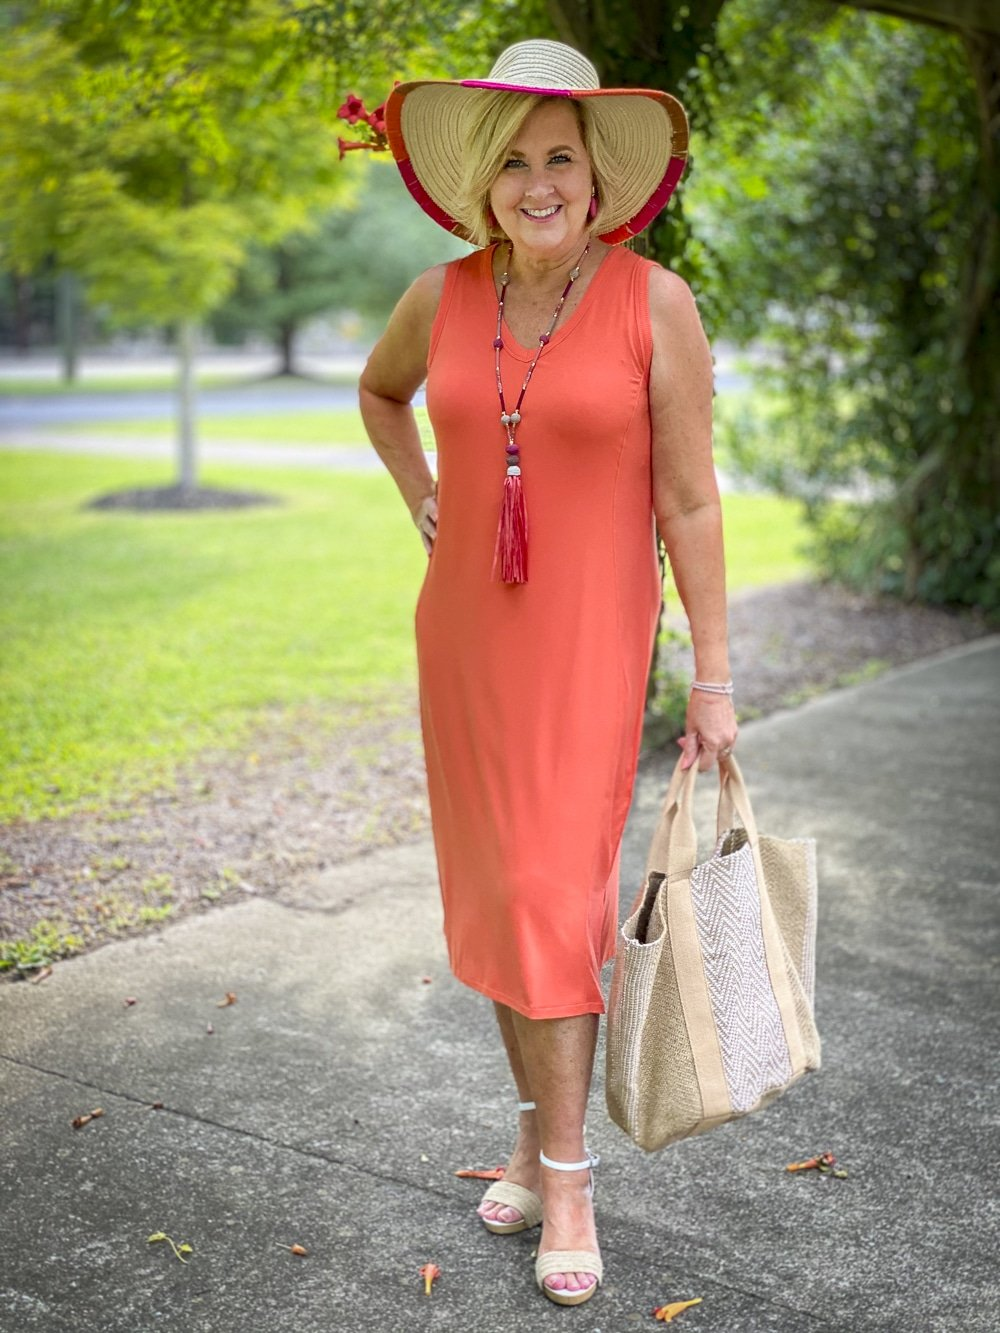 Fashion Blogger 50 Is Not Old is wearing an orange midi dress with a summerberry tassel necklace in pink, a yarn trimmed straw hat, and carrying a jute tote all from Chico's